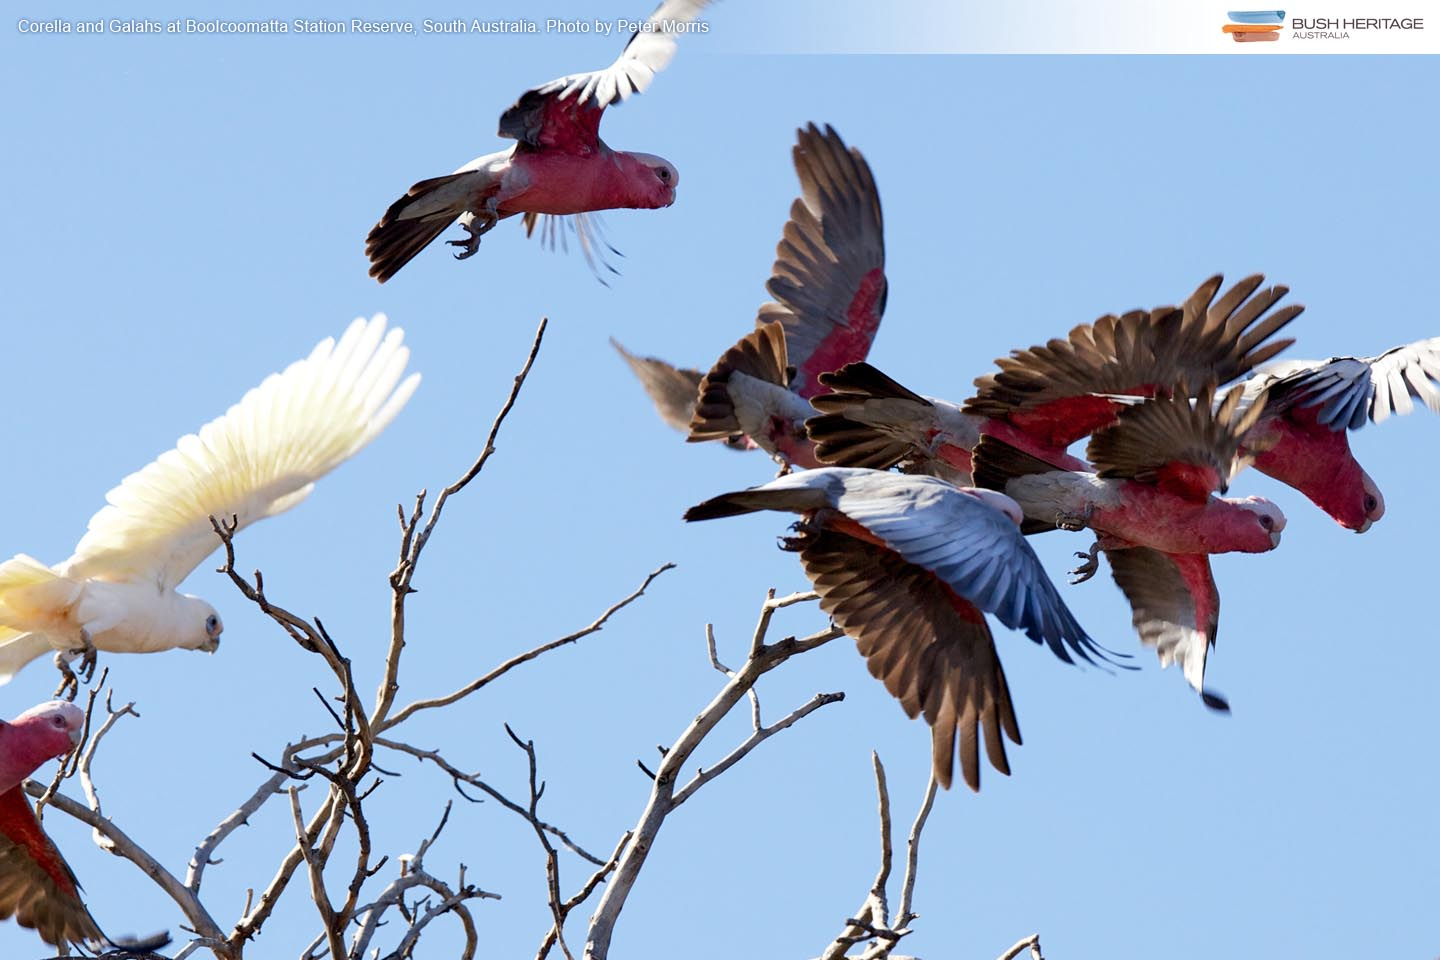 Corella and galahs at Naree Station Reserve, New South Wales